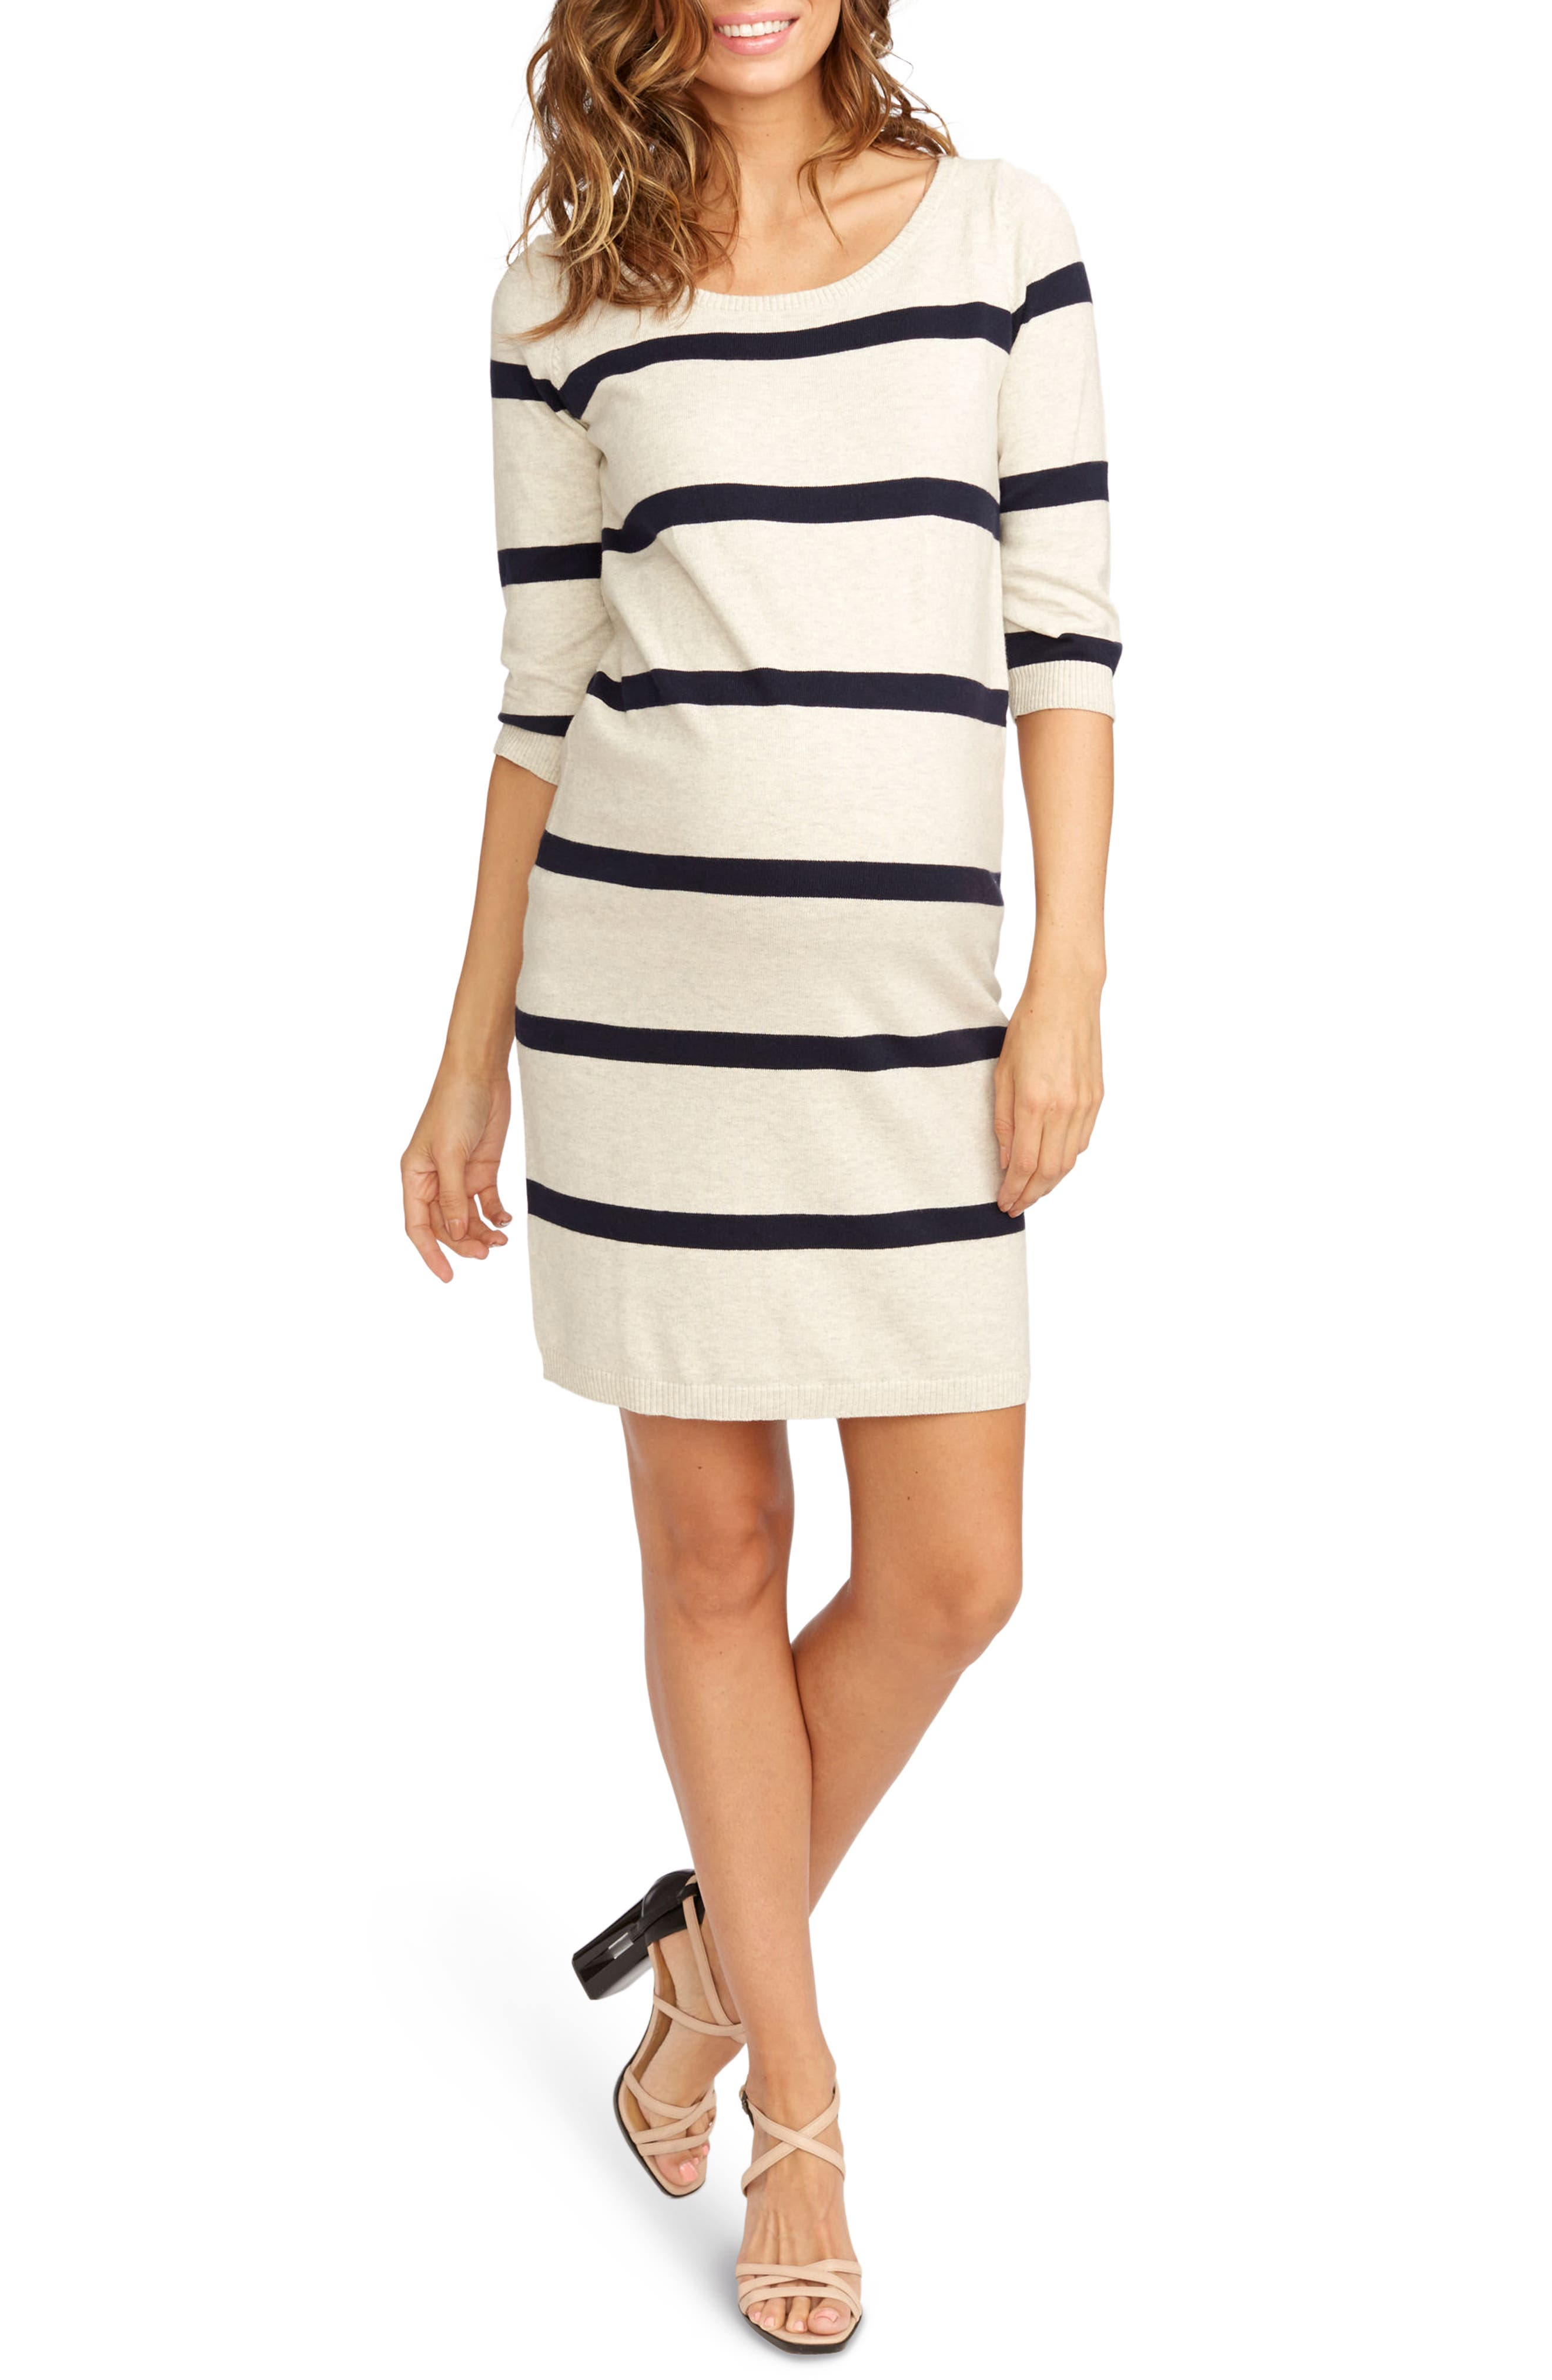 Alternate Image 1 Selected - Rosie Pope 'Harper' Stripe Maternity Sweater Dress